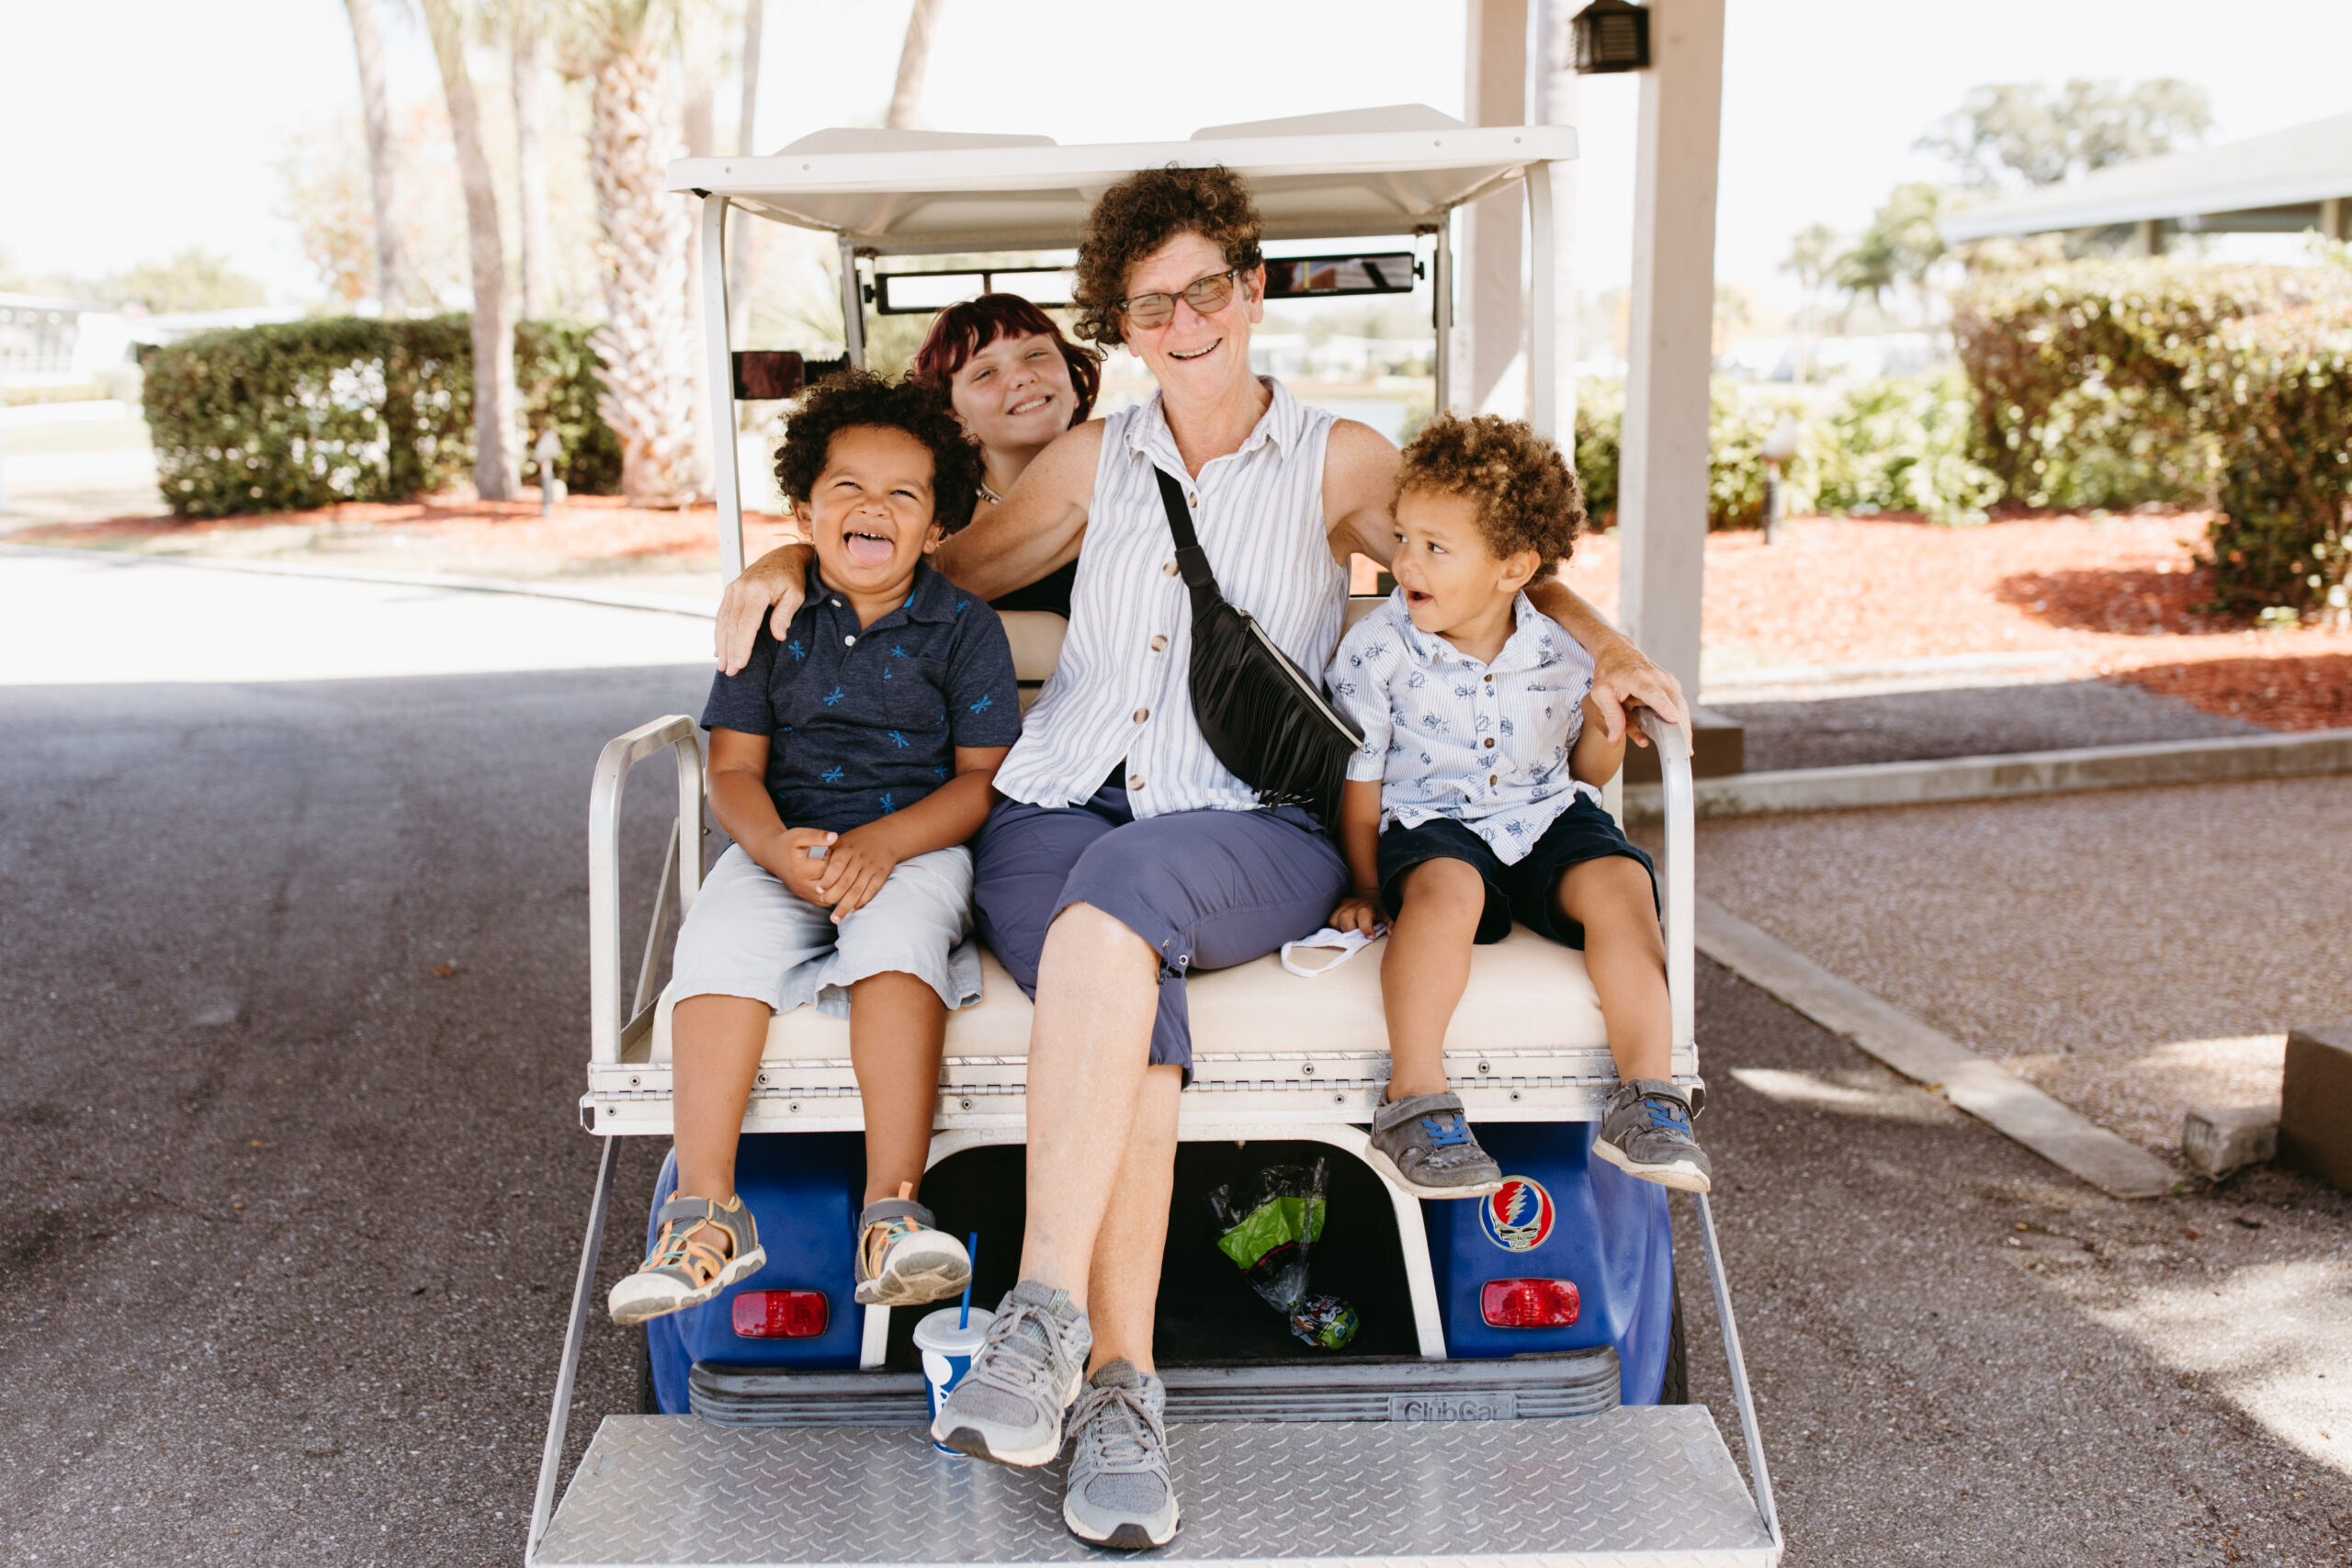 Grandmother rides with her three grandkids in a golf cart in Venice, Florida